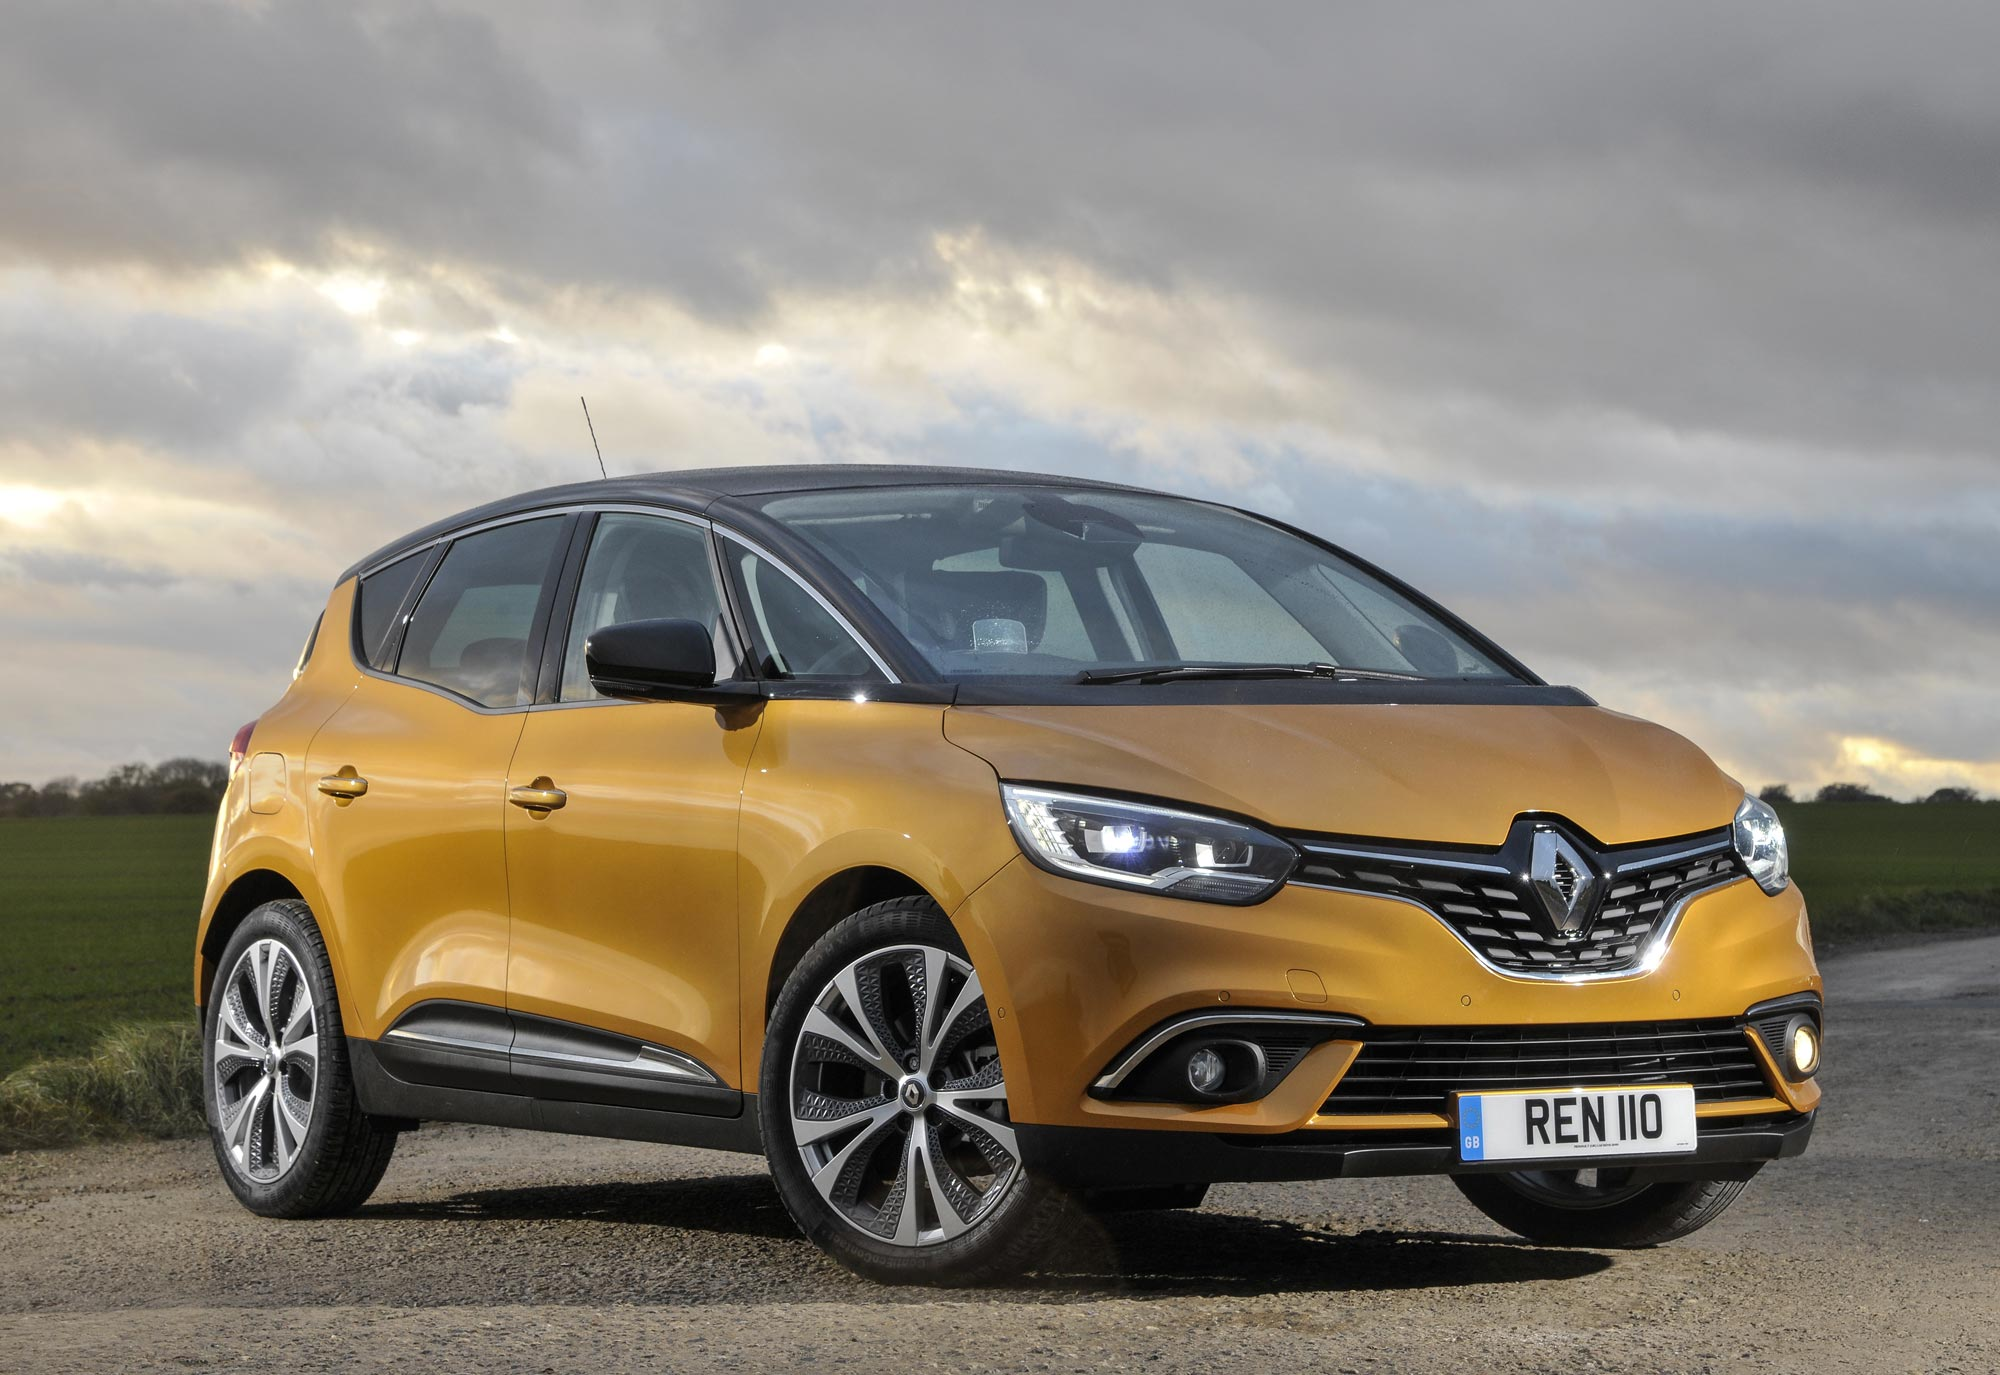 All-New-Renault-Scénic-Dynamique-S-dCi-110-(11).jpg